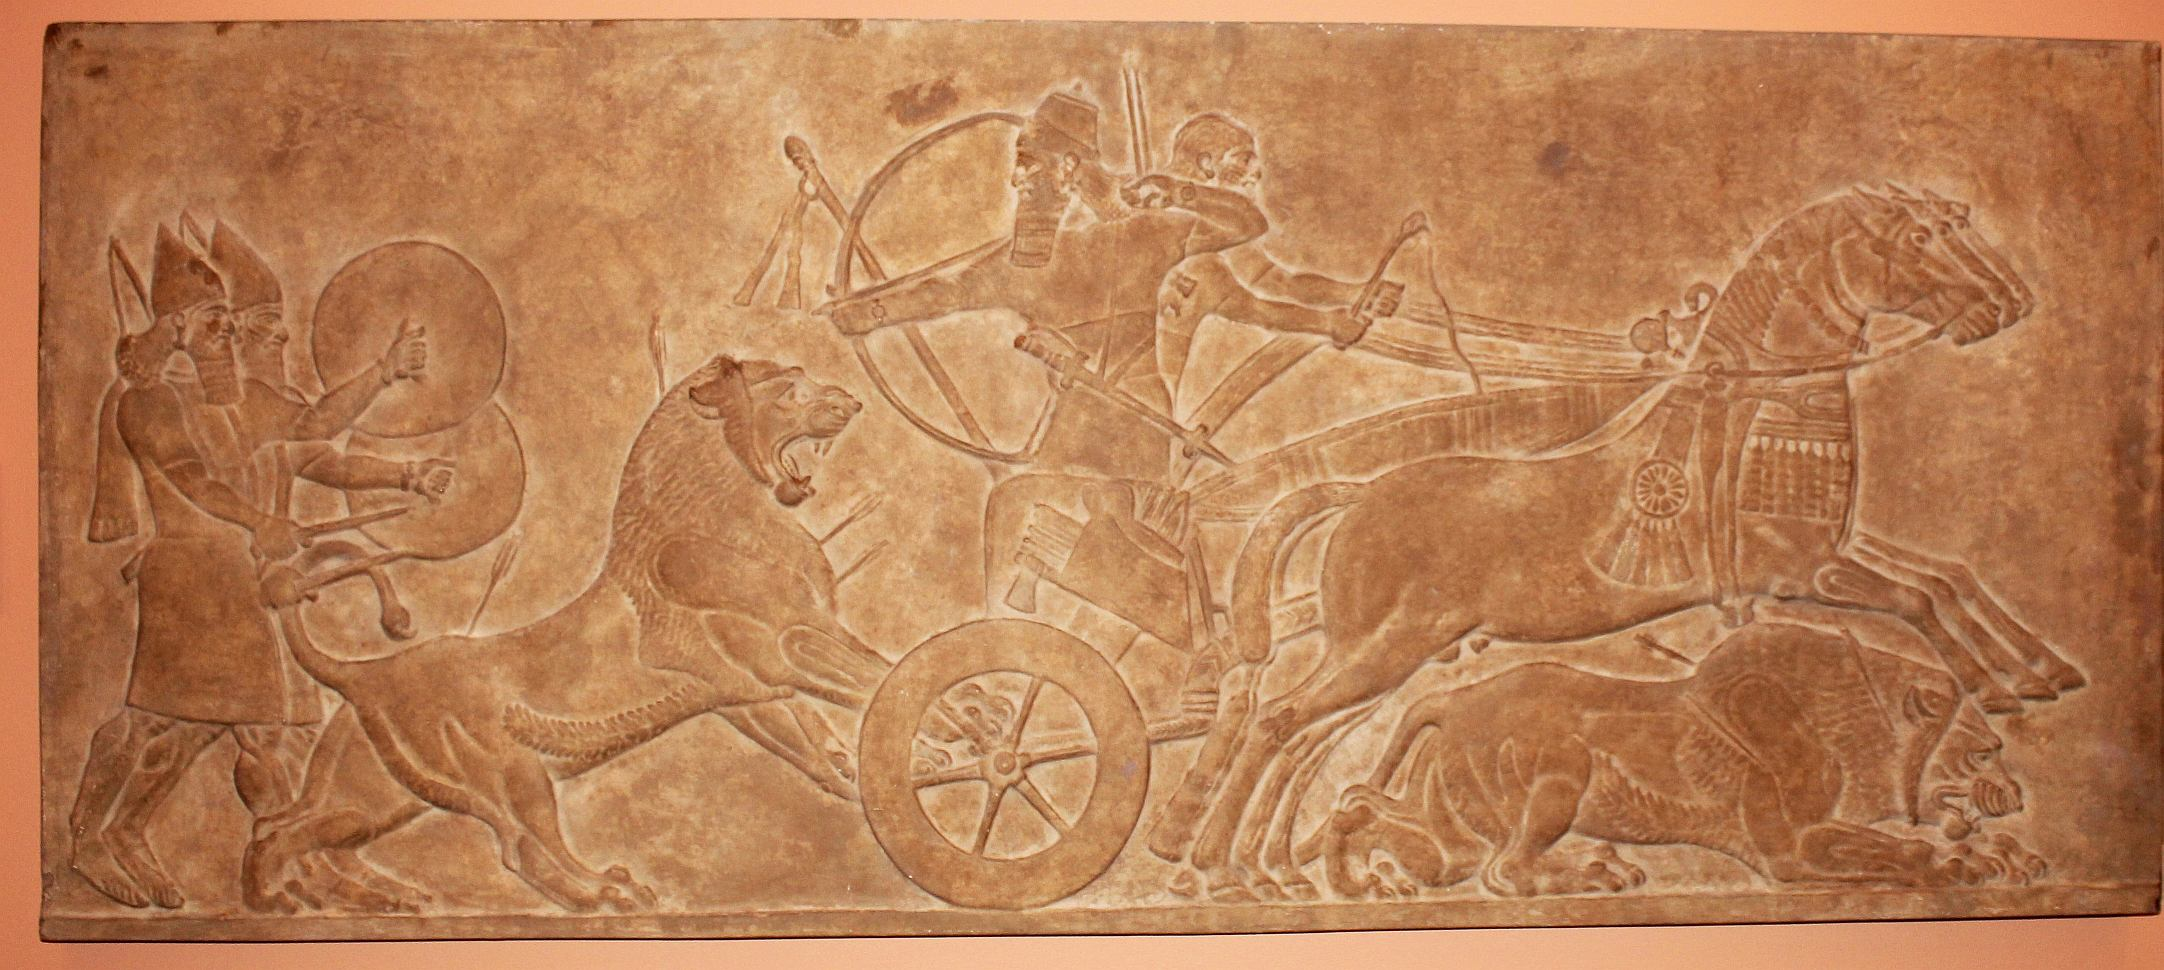 mesopotamia hunt for lions 0 b c art   id 45985   art abyss